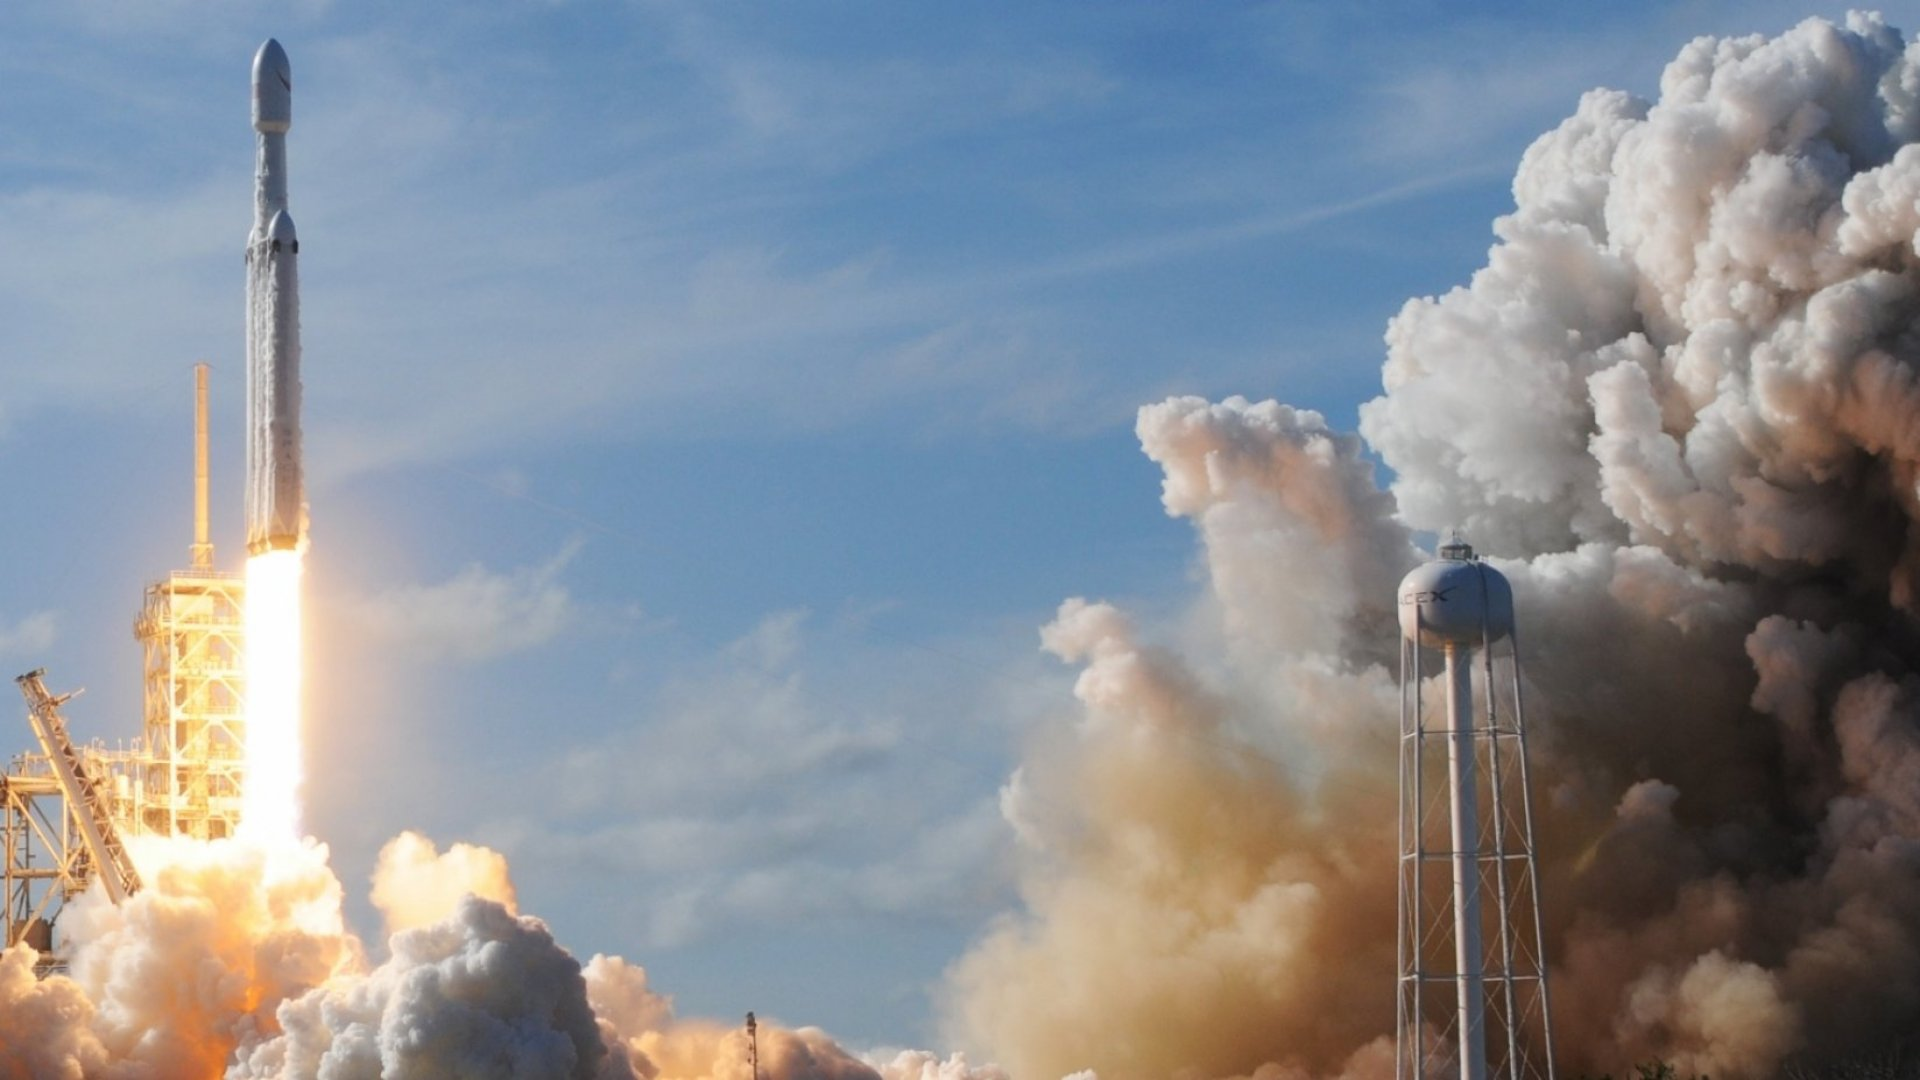 Elon Musk's Falcon Heavy Launch Teaches 5 Powerful Lessons That Redefine Marketing